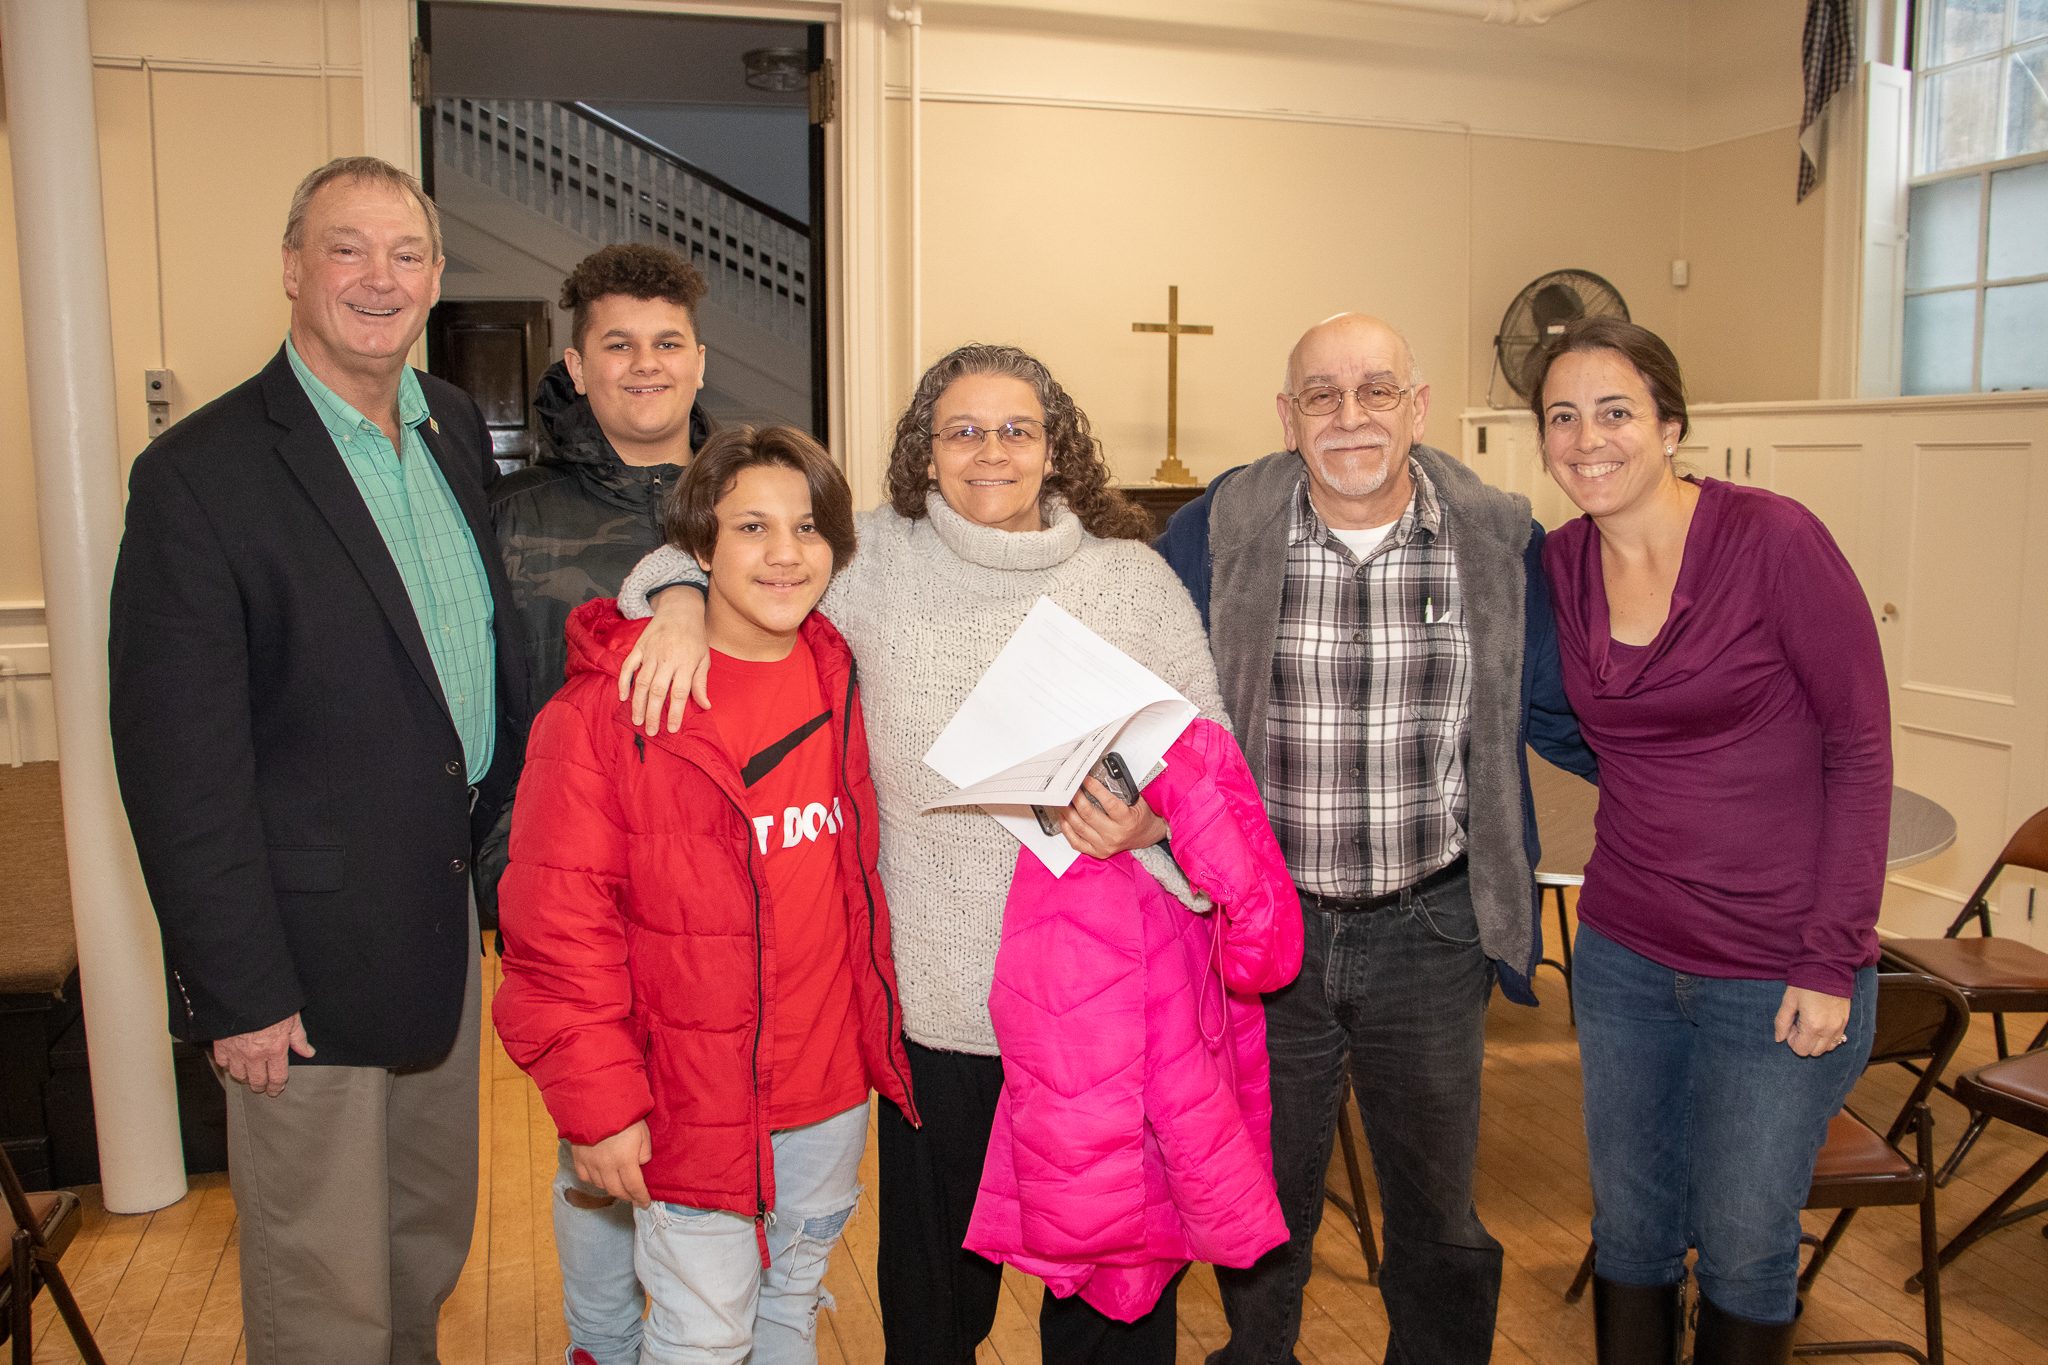 Partner family for one of the two Veterans Homes welcomed by Jim Middleton and Danielle Justo